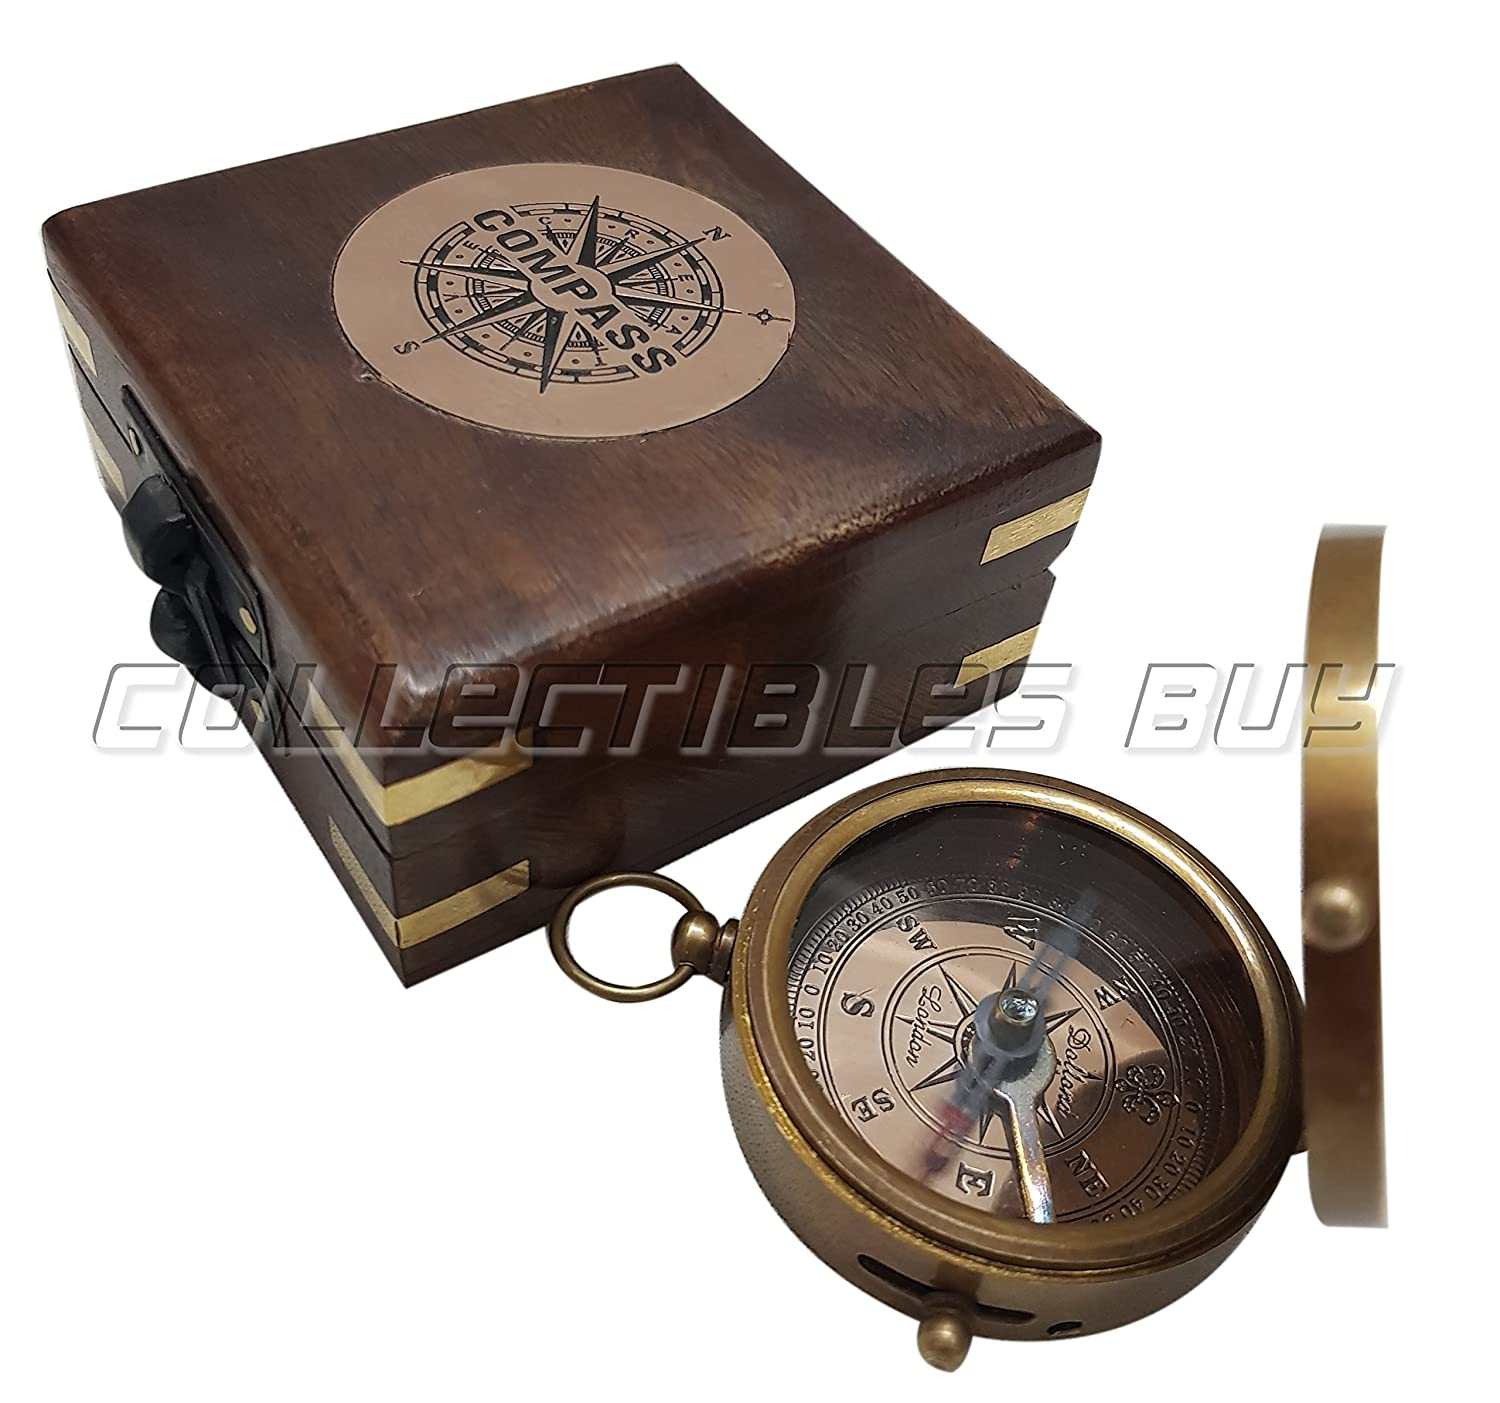 Antique Dollond London Brass Compass Retro Brown Wooden Box Nautical Magnetic Sailor Handmade Compasses CollectiblesBuy